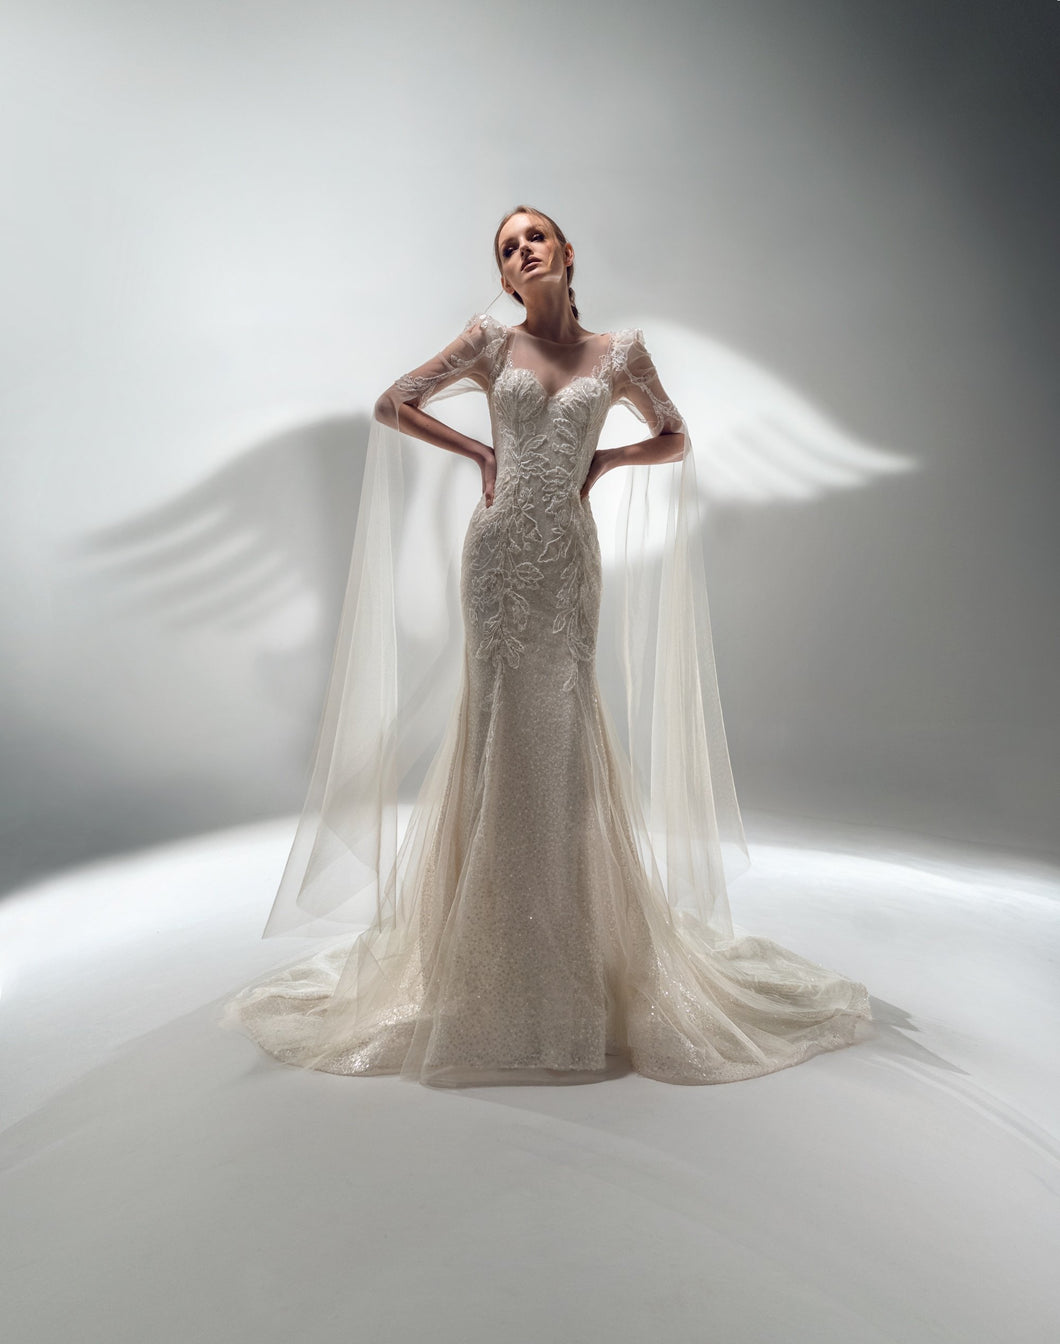 Ballet Collection 'Flora' Papilio Bridal RTW 19-2112LPr Ready To Wear European Bridal Wedding Gown Designer Philippines